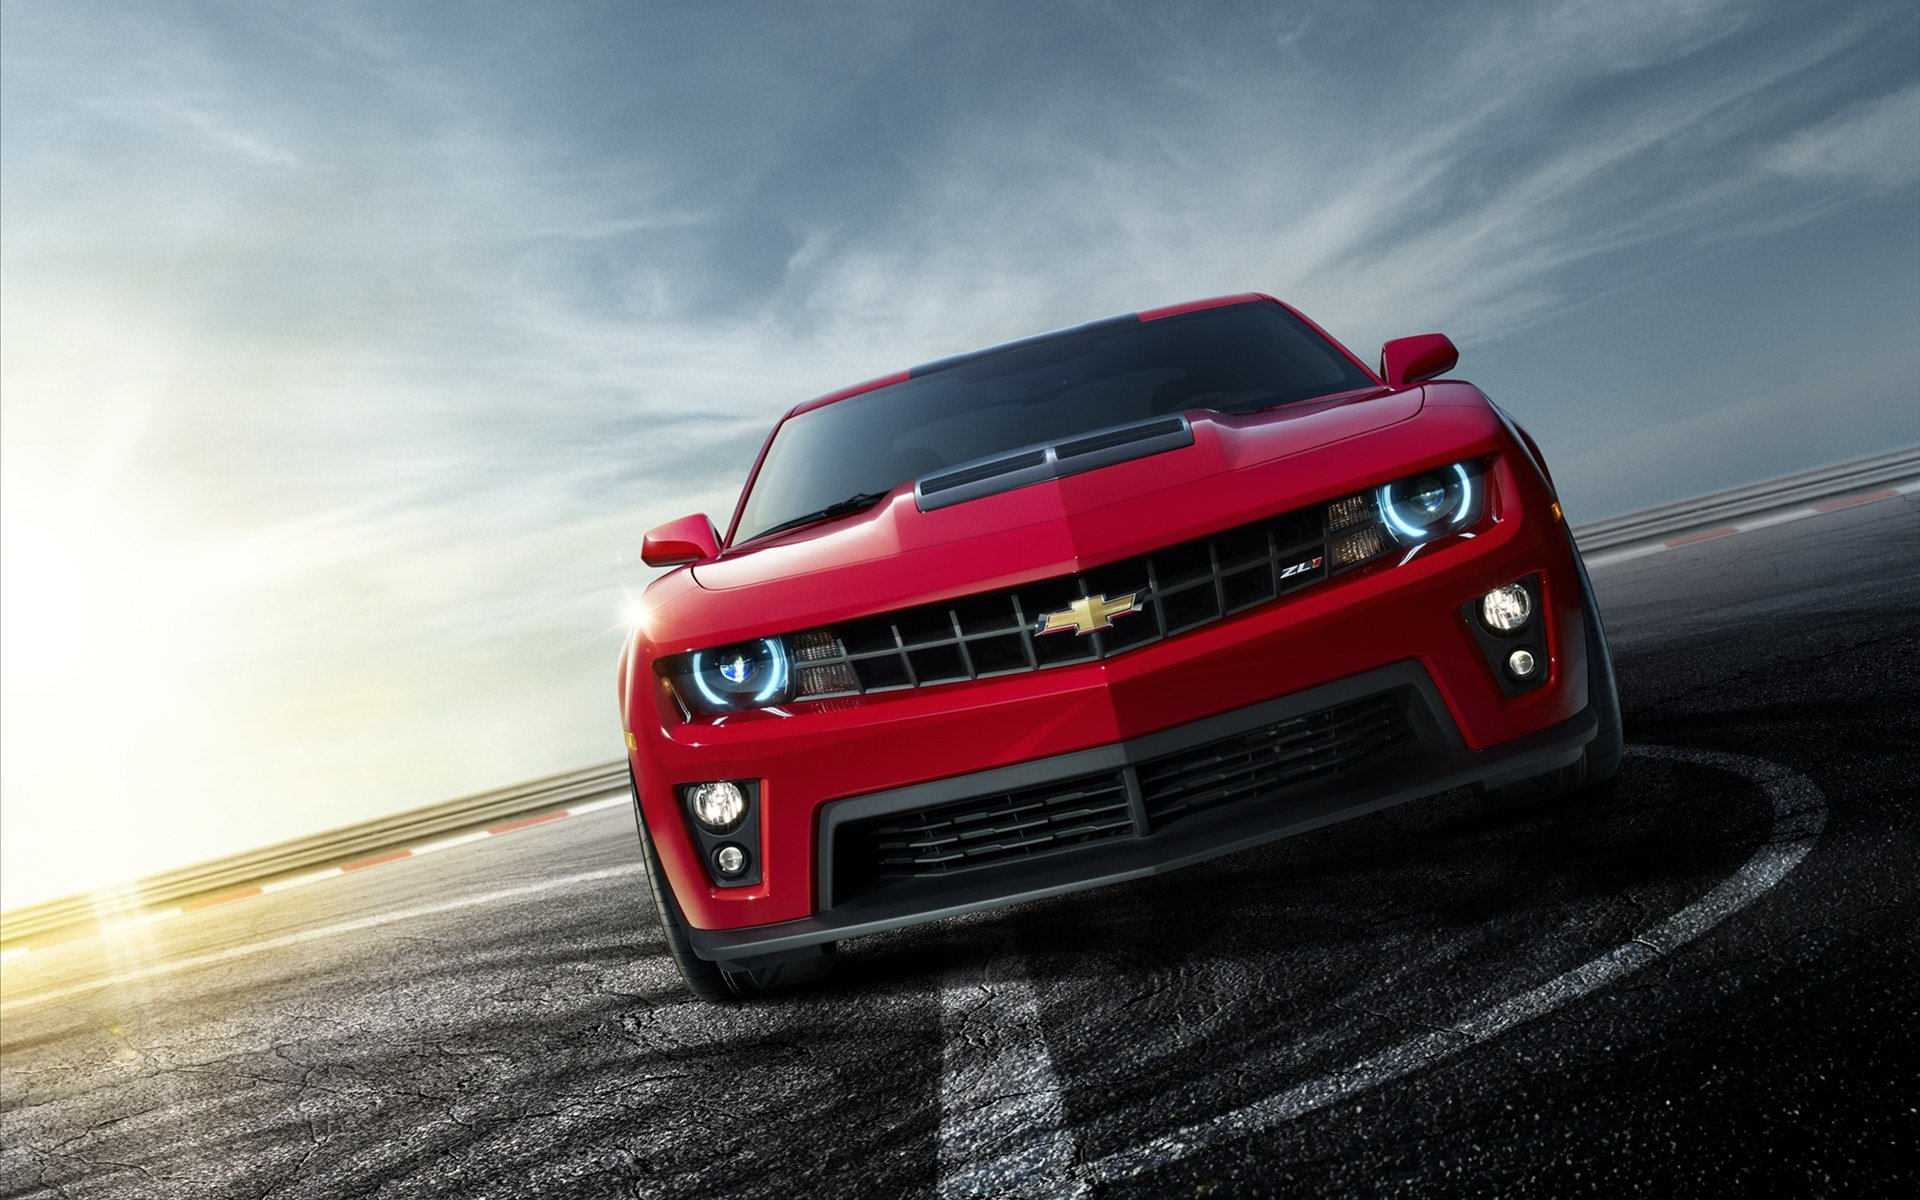 Chevrolet Camaro ZL1 2012 Wallpaper HD Car Wallpapers 1920x1200